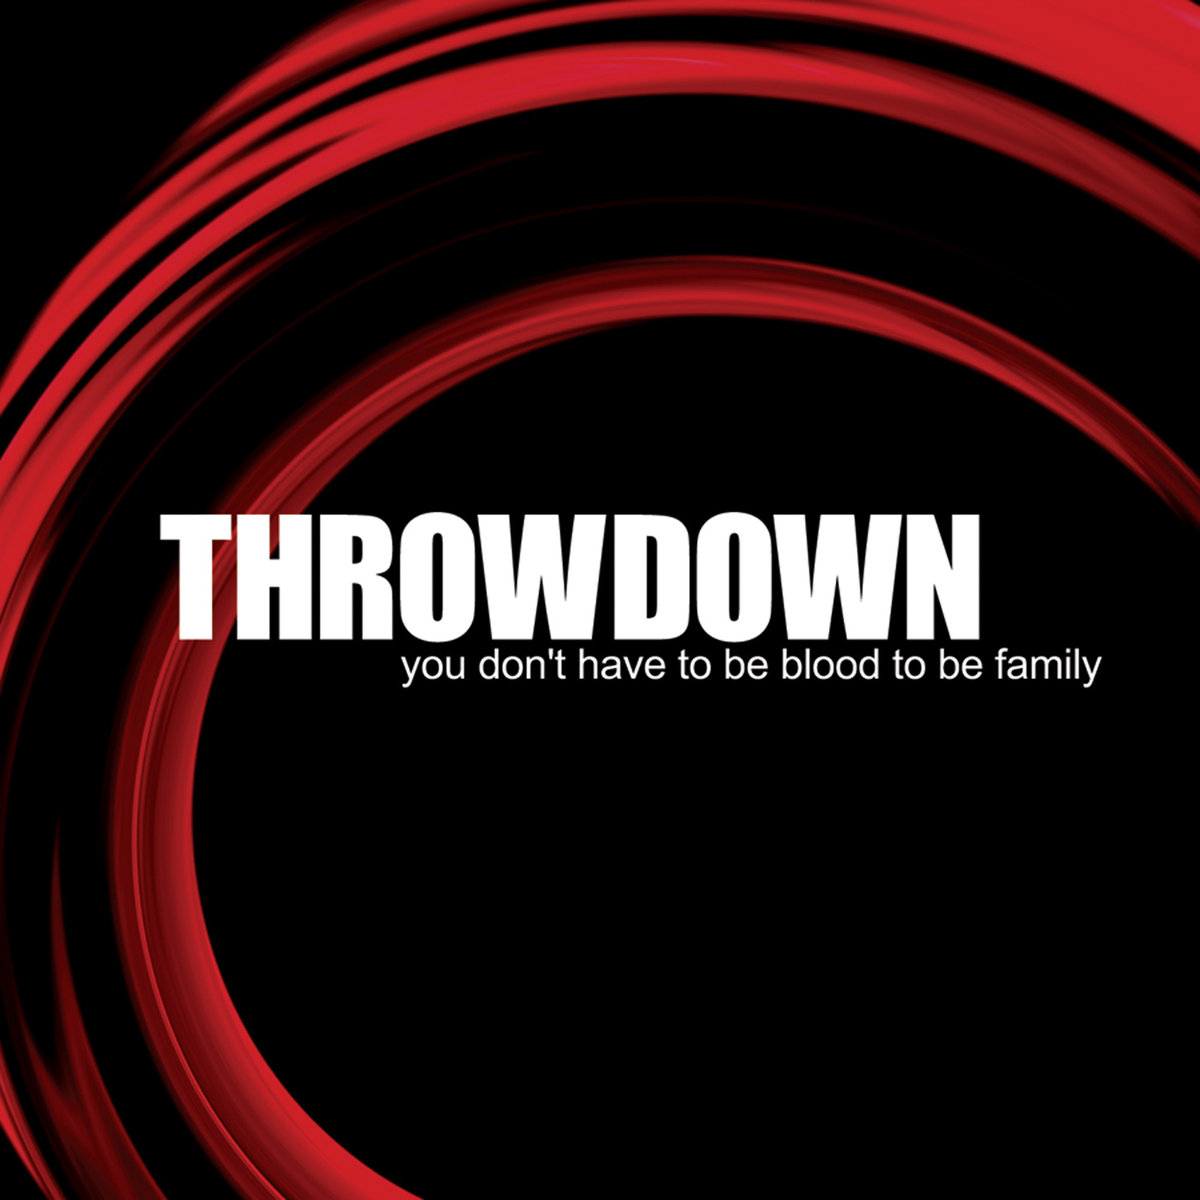 Throwdown You Don't Have to Be Blood.jpg